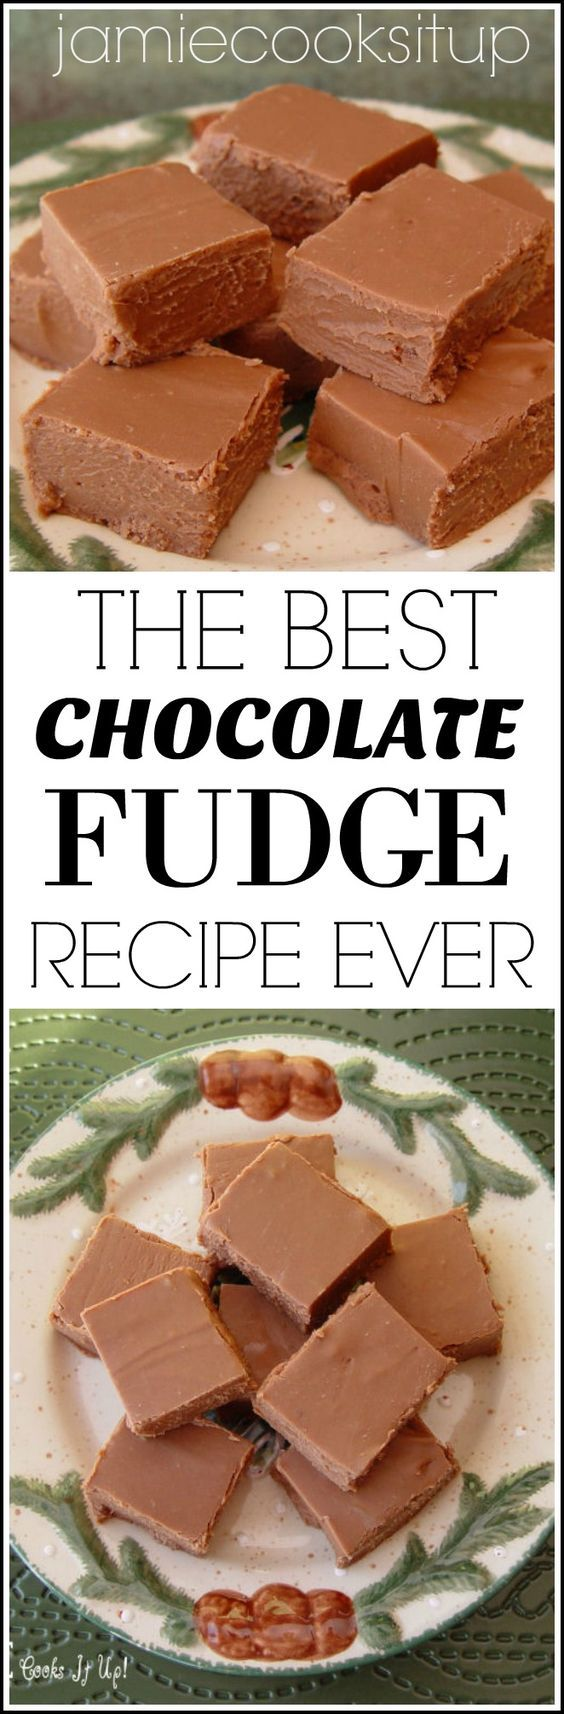 The best Chocolate Fudge Recipes Ever from Jamie Cooks It Up!